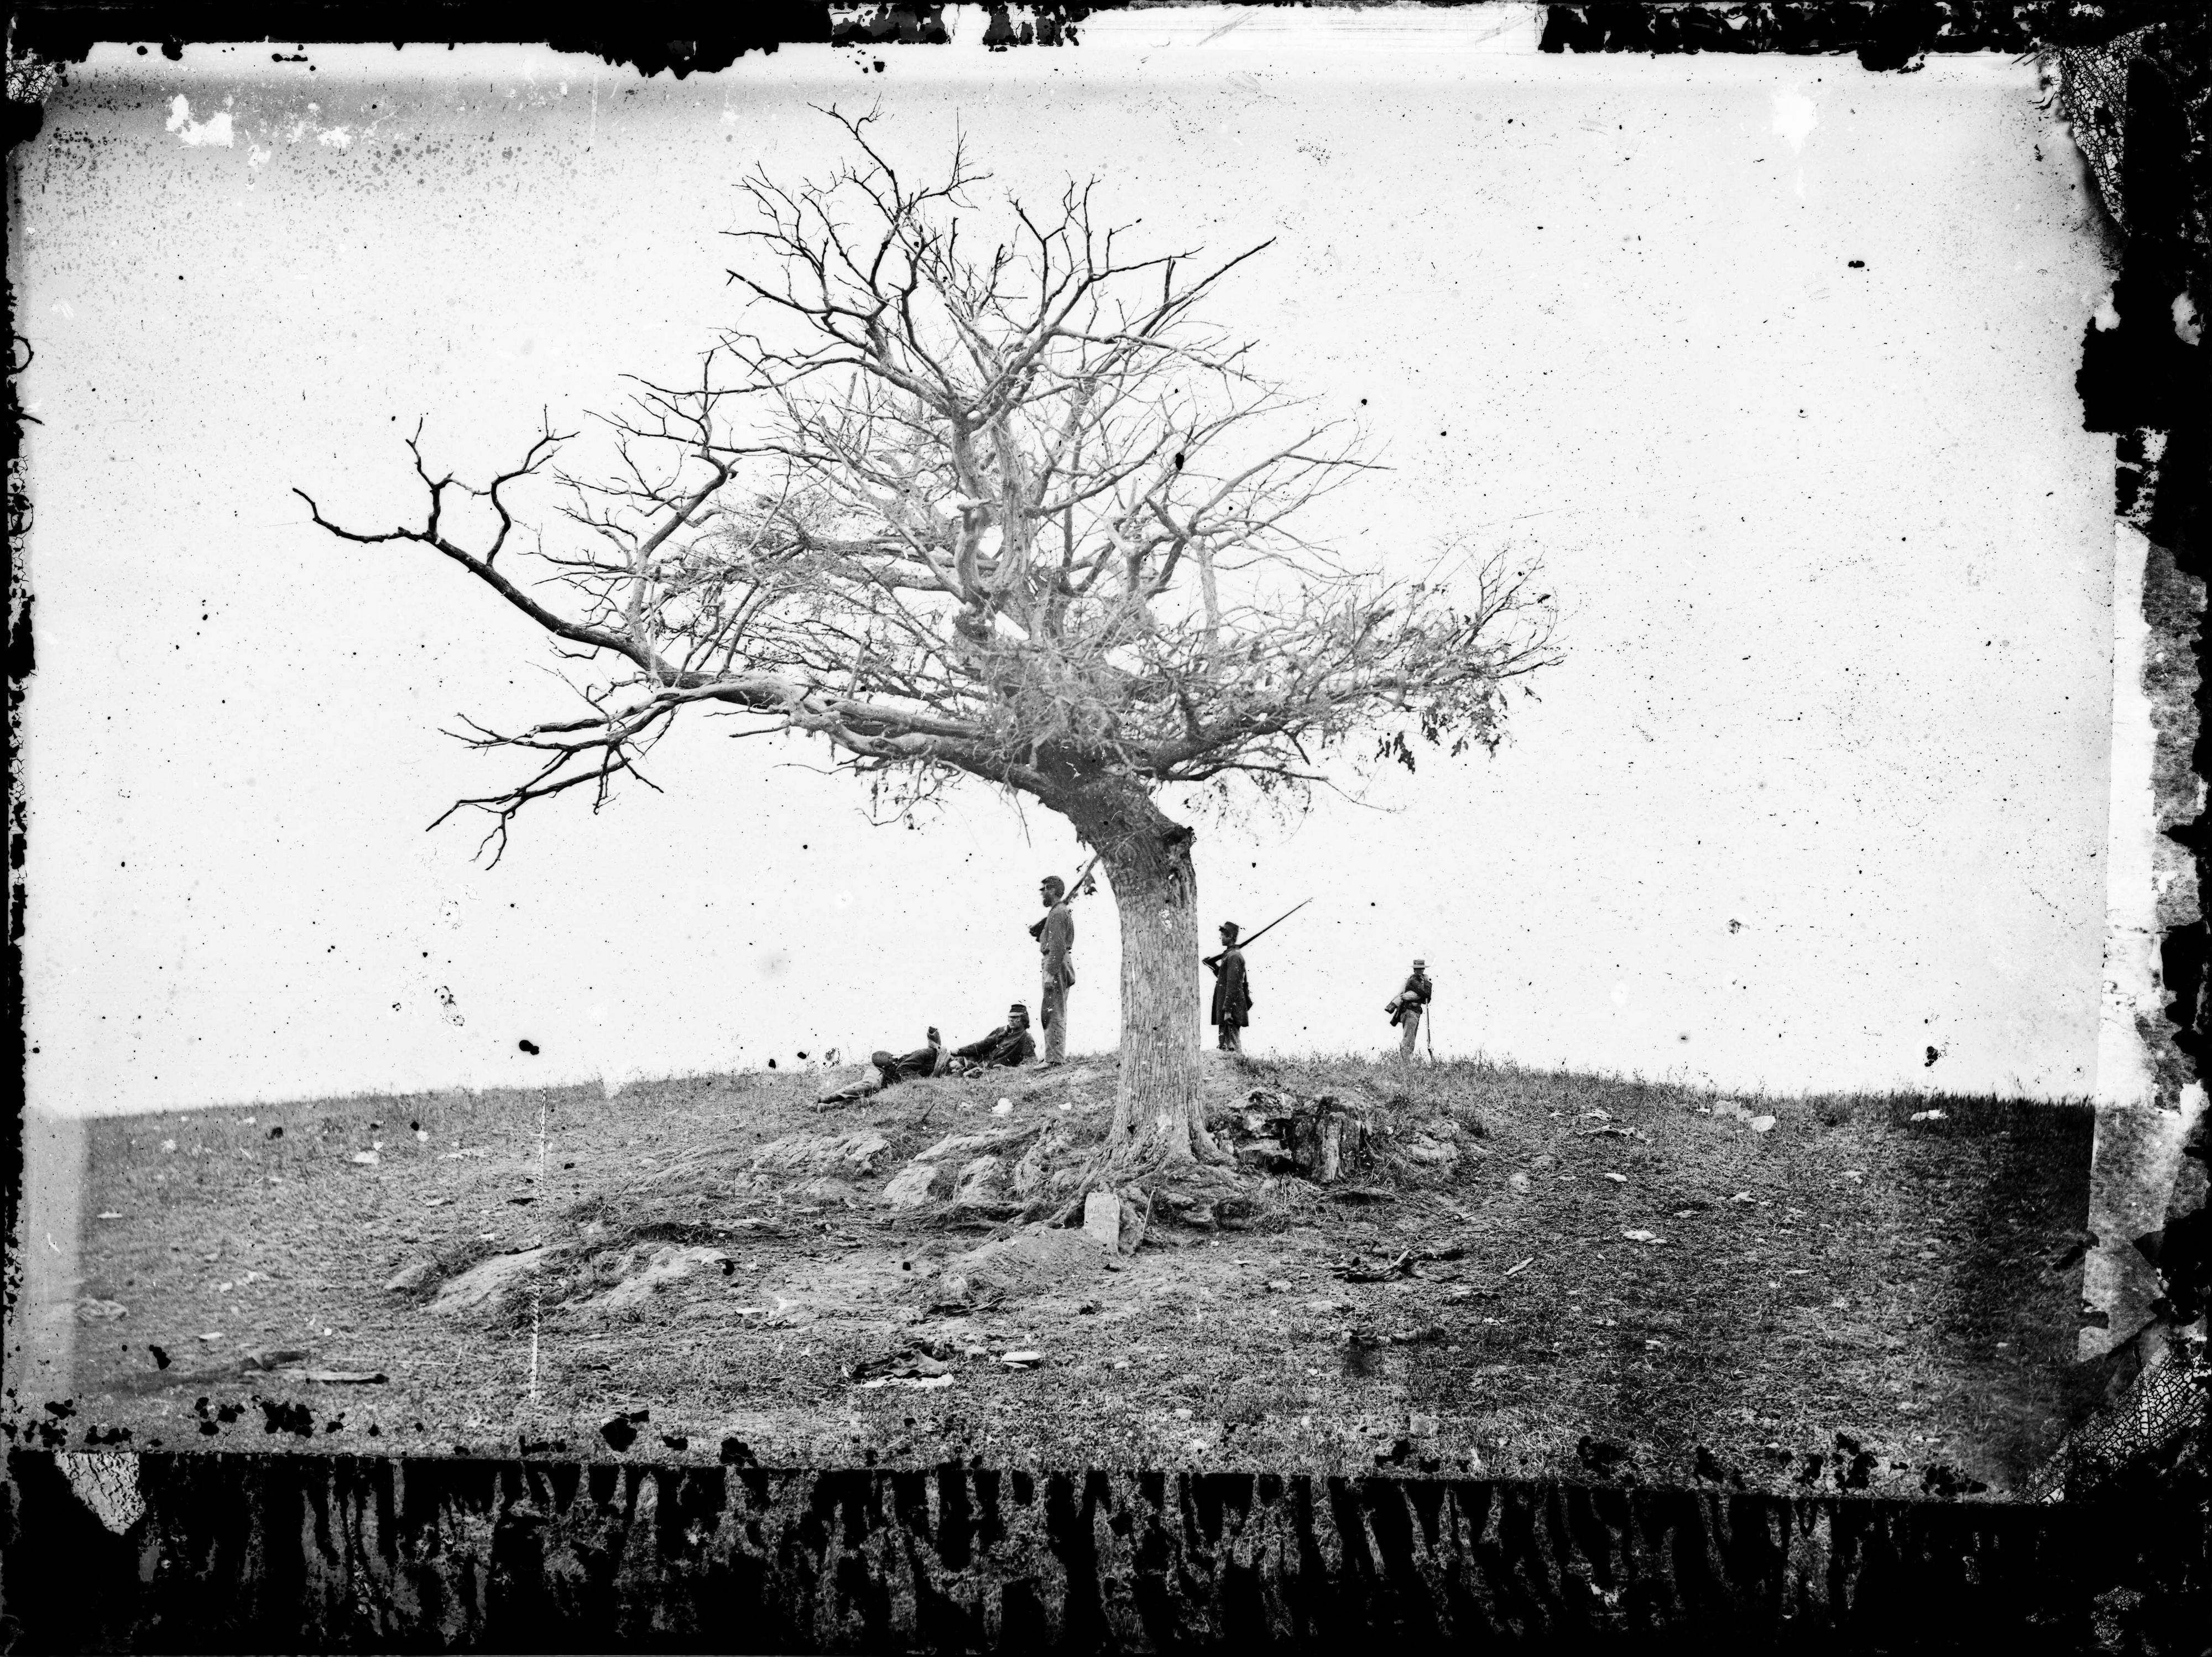 This 1862 photo made available by the Library of Congress shows soldiers next to a lone grave after the Battle of Antietam near Sharpsburg, Md. When dawn broke along Antietam Creek on Sept. 17, 1862, cannon volleys launched a Civil War battle that would leave 23,000 casualties on the single bloodiest day in U.S. history and mark a crucial pivot point in the war.